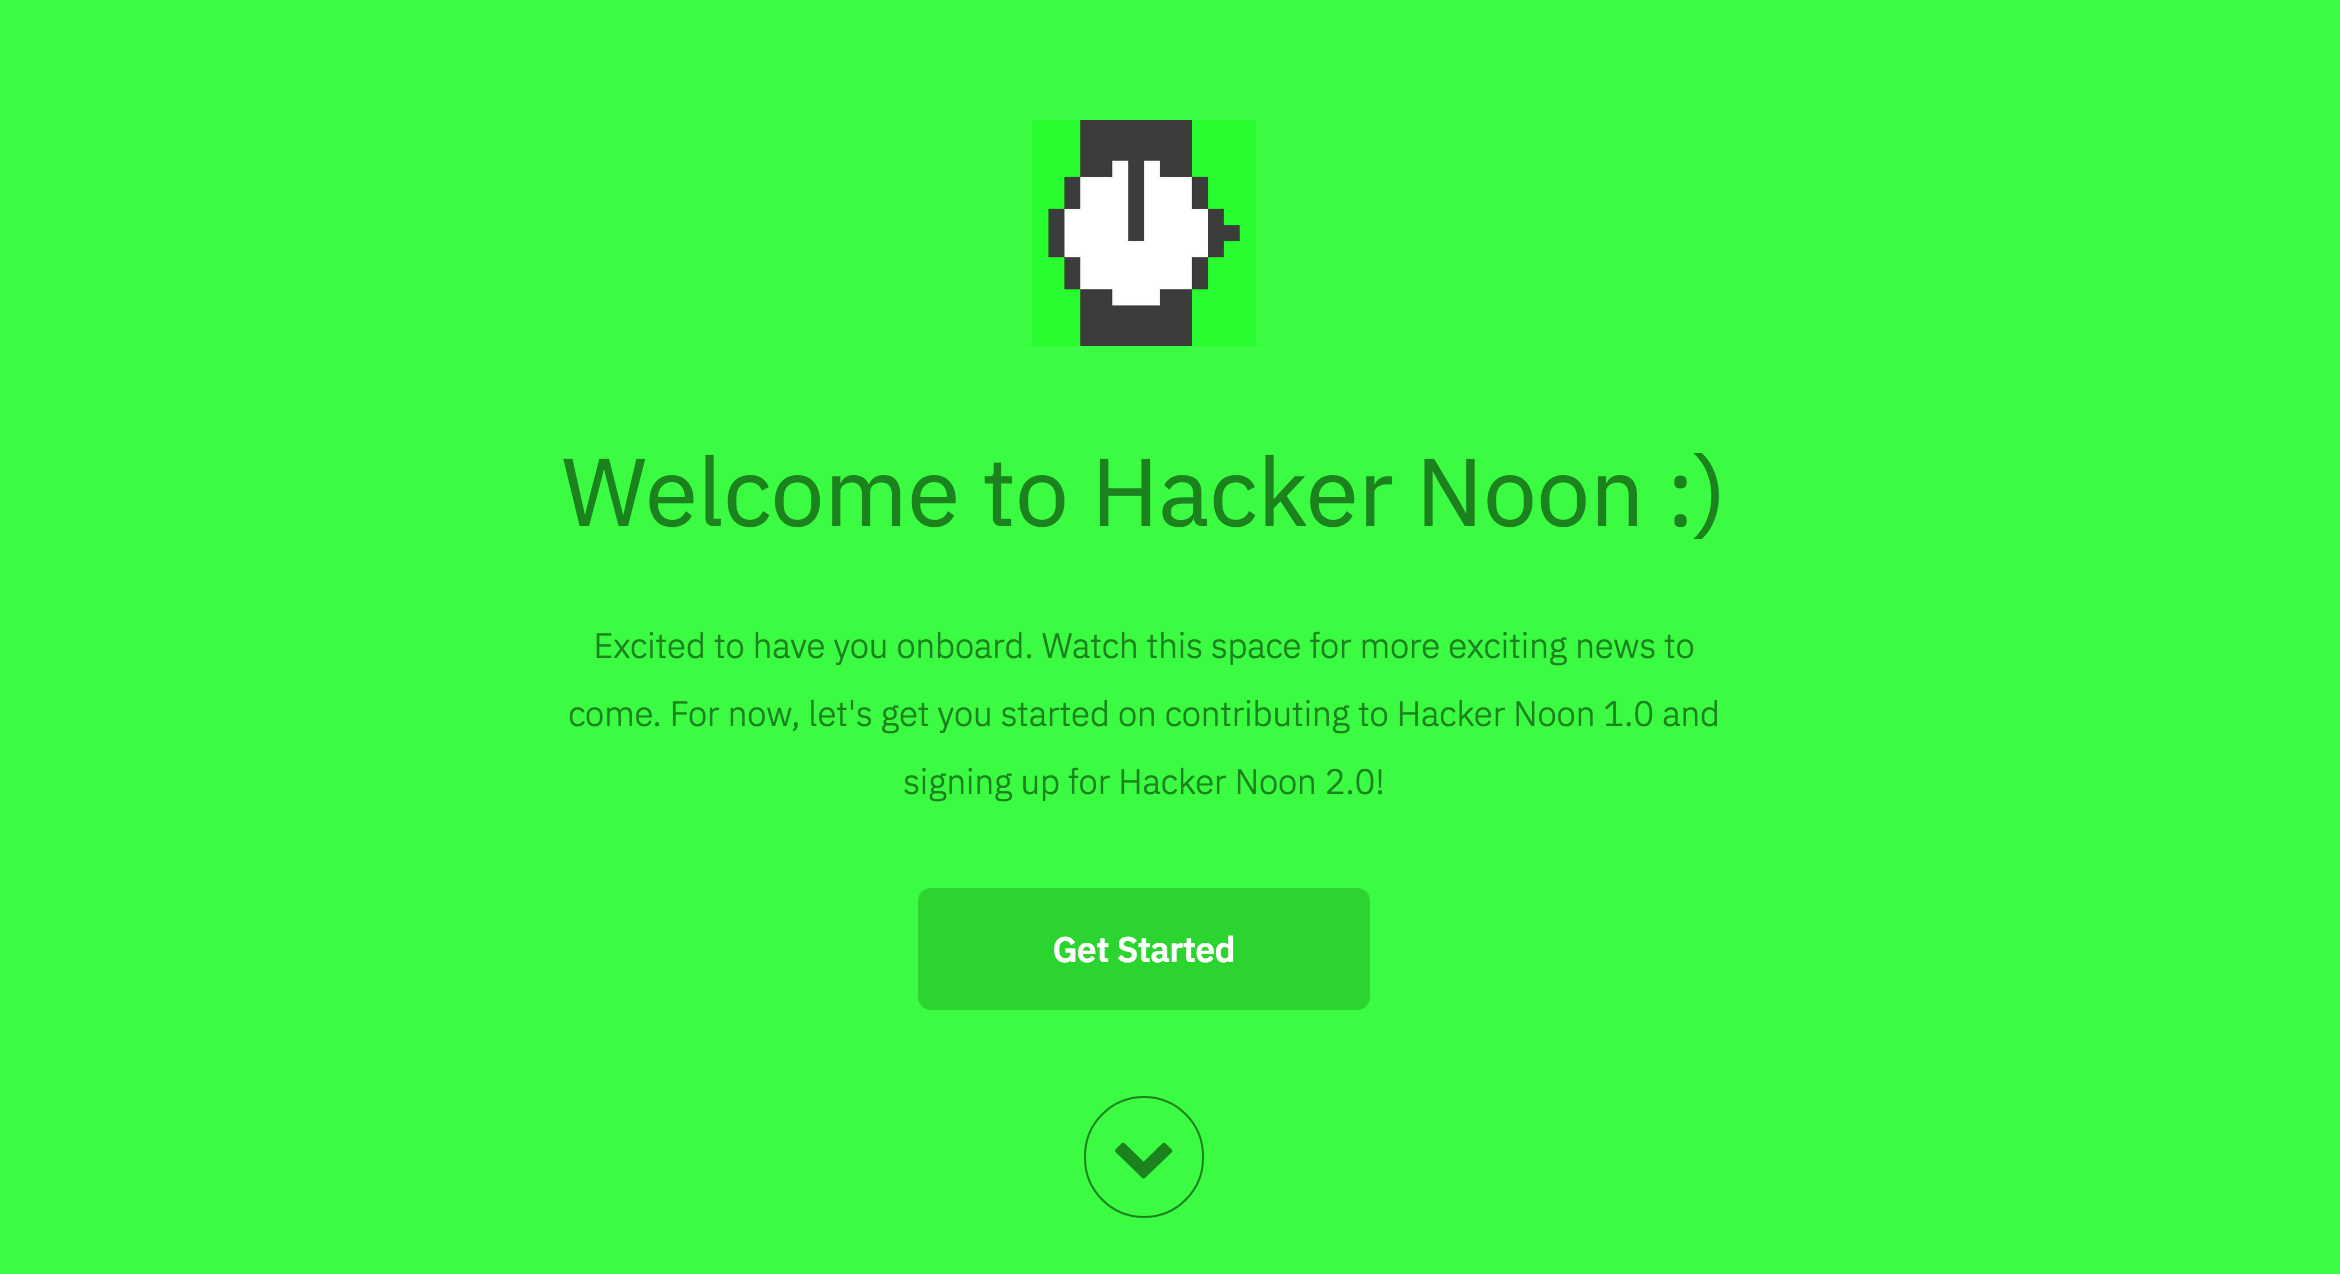 /how-to-contribute-a-story-to-hacker-noon-maz3uy5 feature image